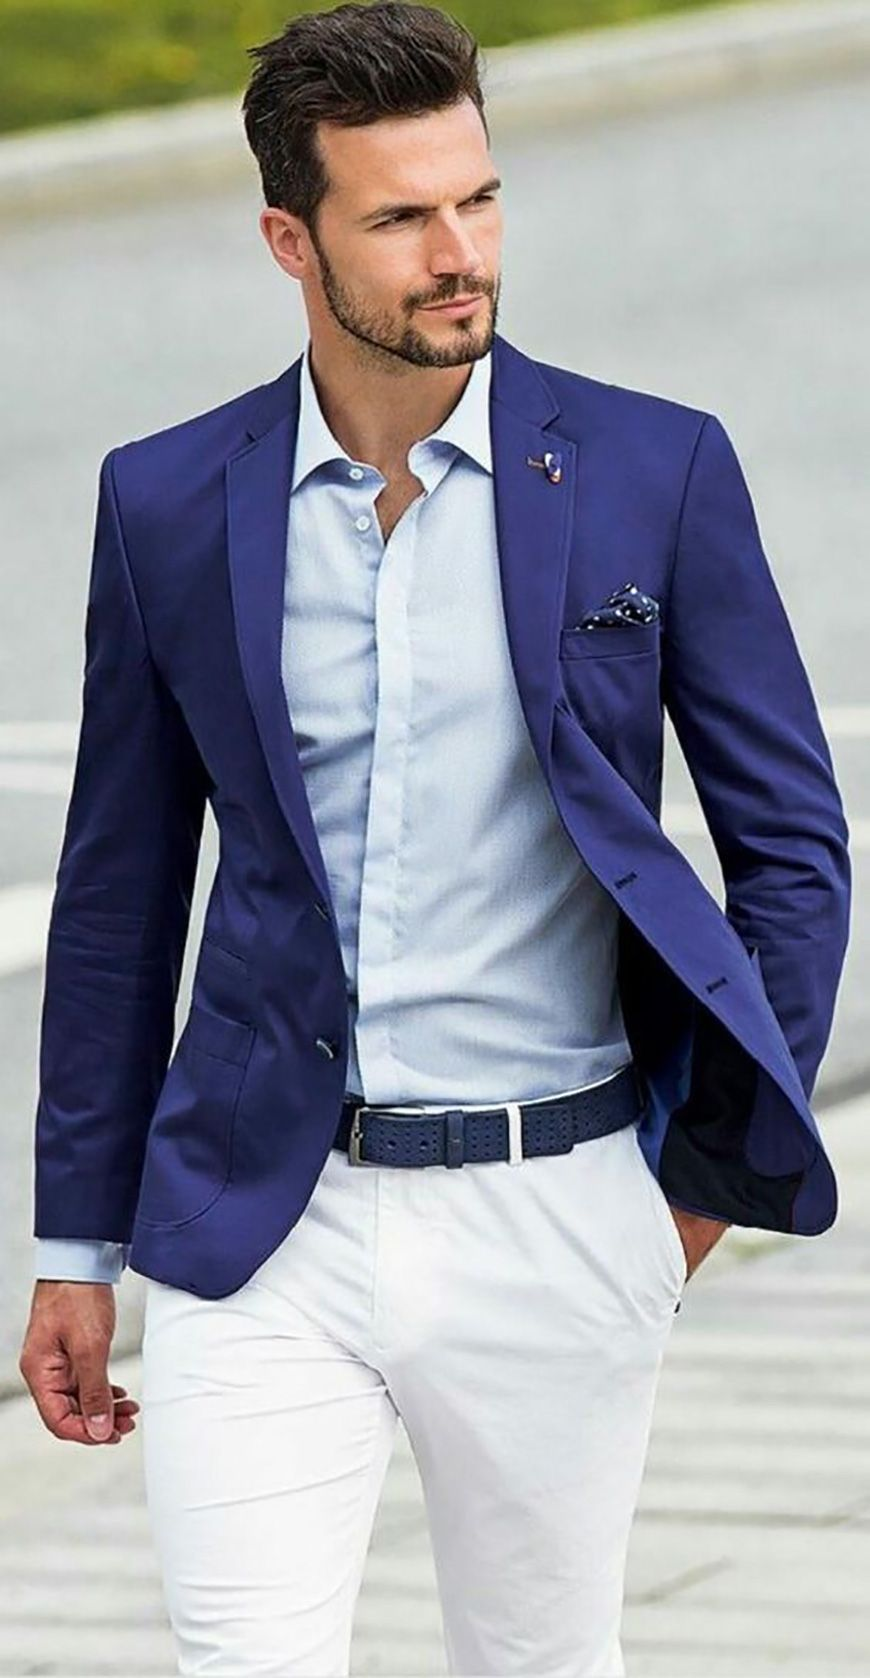 Wedding Ideas by Colour: Navy Wedding Suits | CHWV | 1 | Pinterest ...